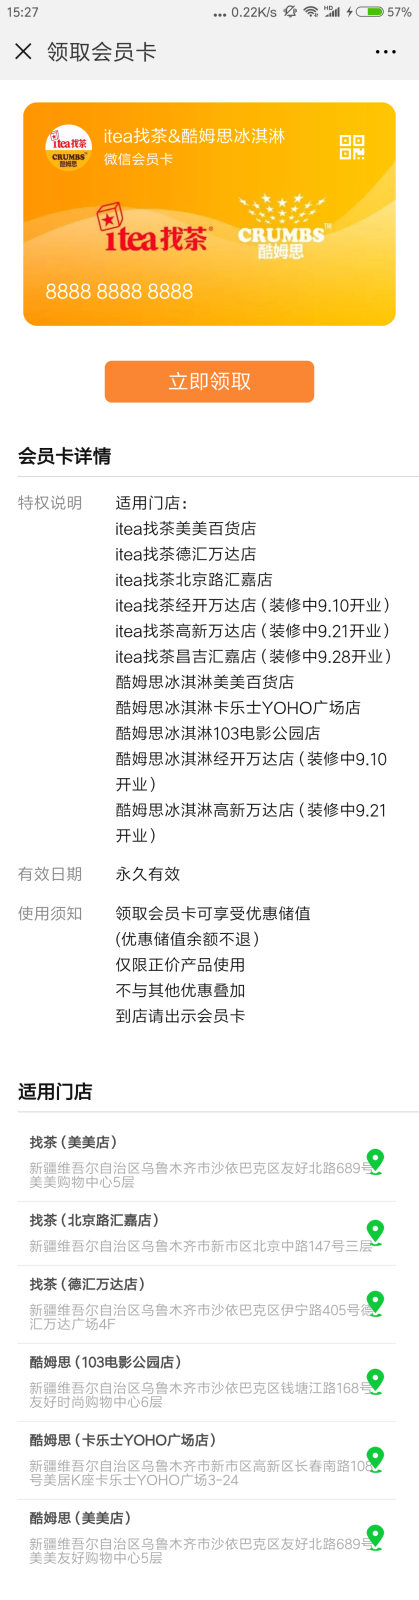 Screenshot_2018-08-28-15-27-56-228_com.tencent.mm.png